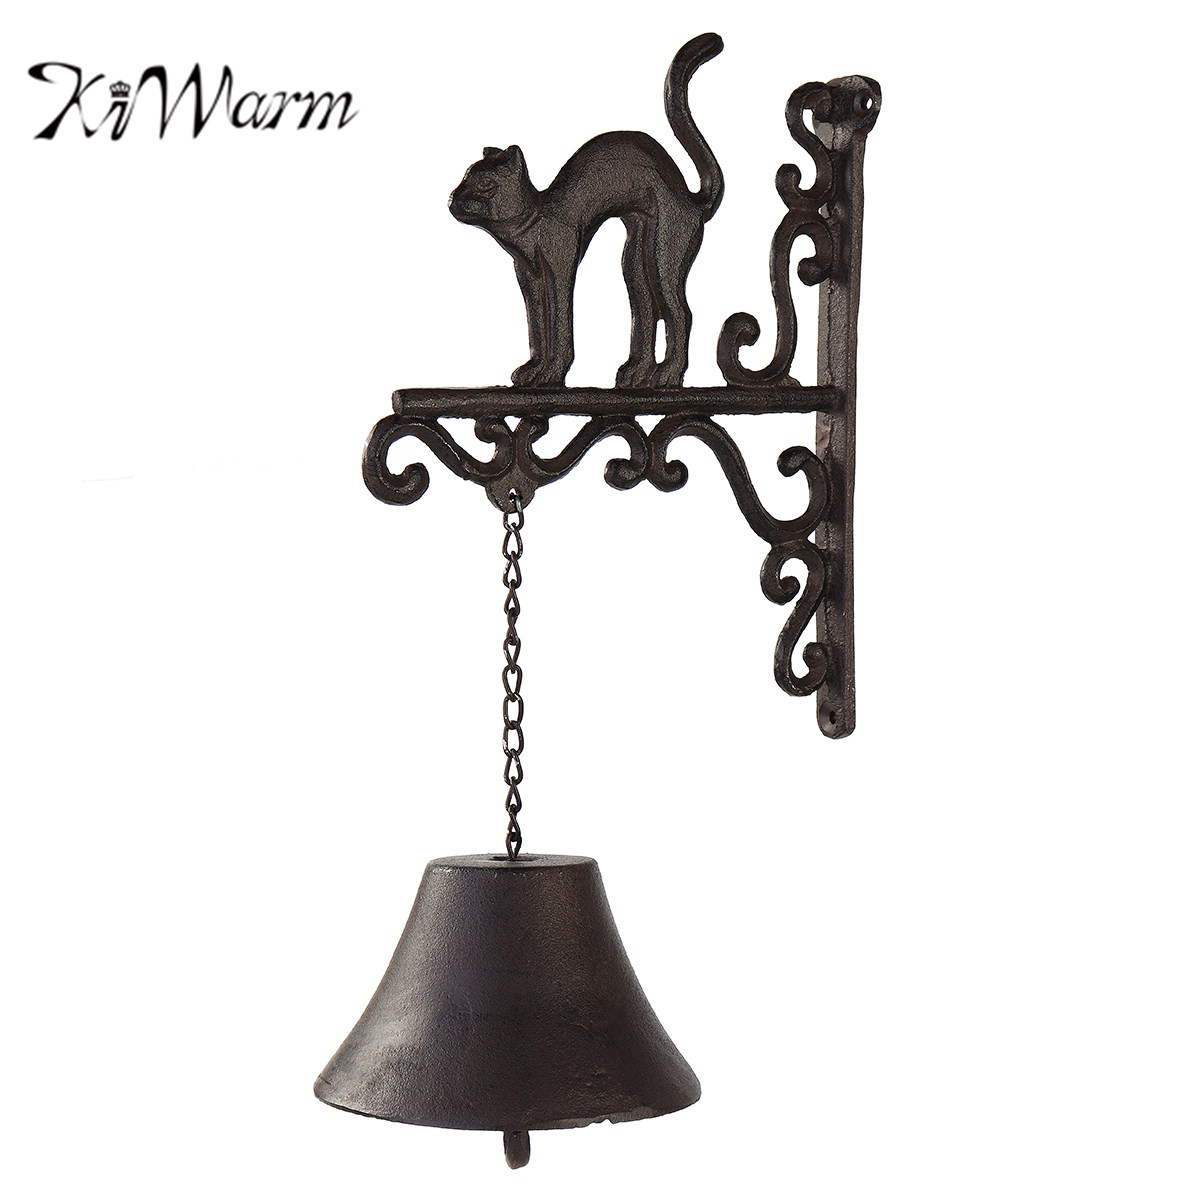 KiWarm Vintage Cast Iron Door Bell Metal Wall Mounted Bend Back Cat Design for Home Garden Hanging Ornament